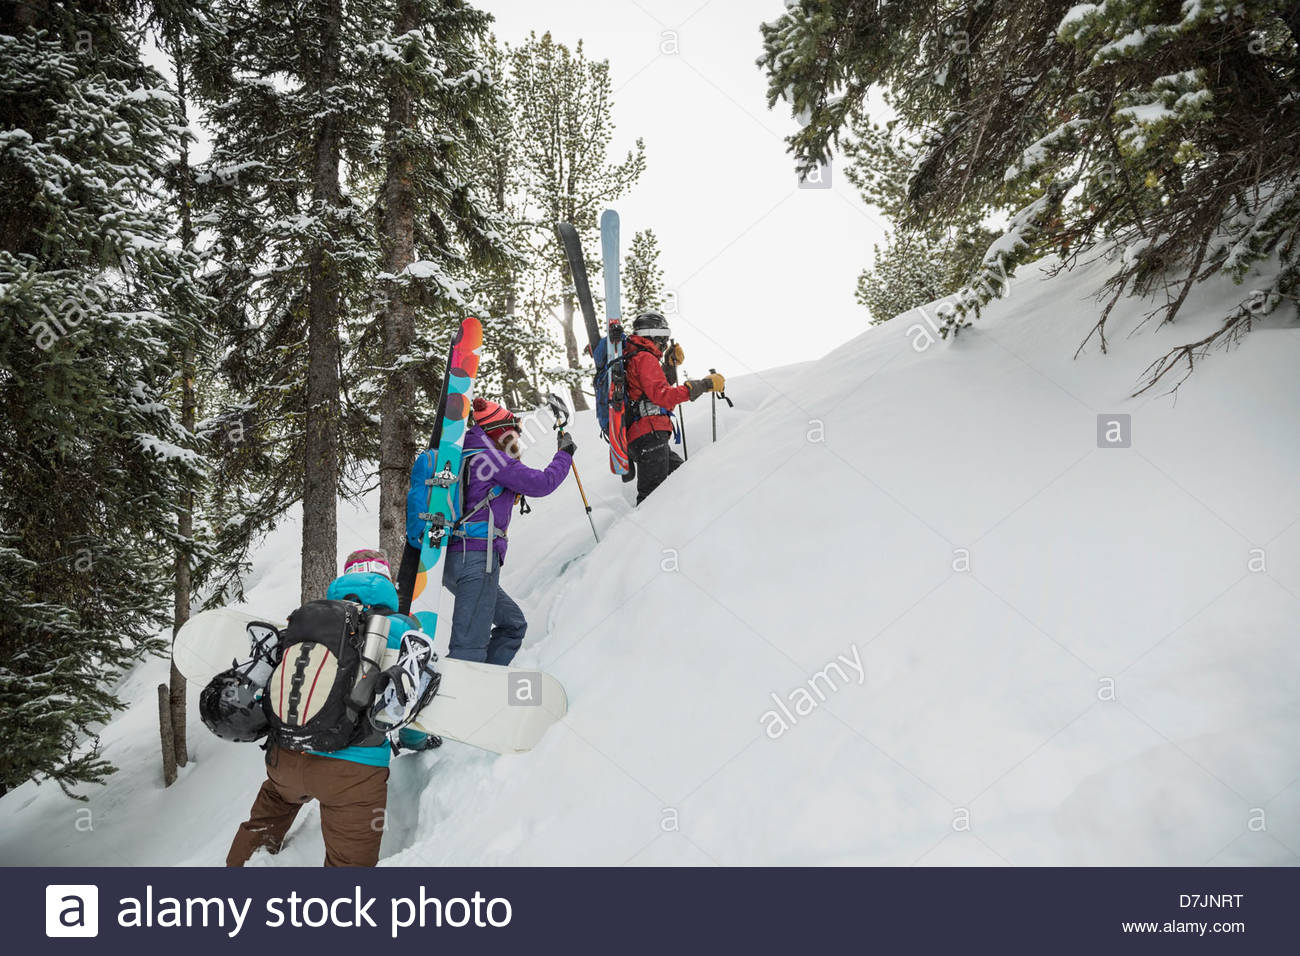 Women backcountry skiers hiking in mountains - Stock Image